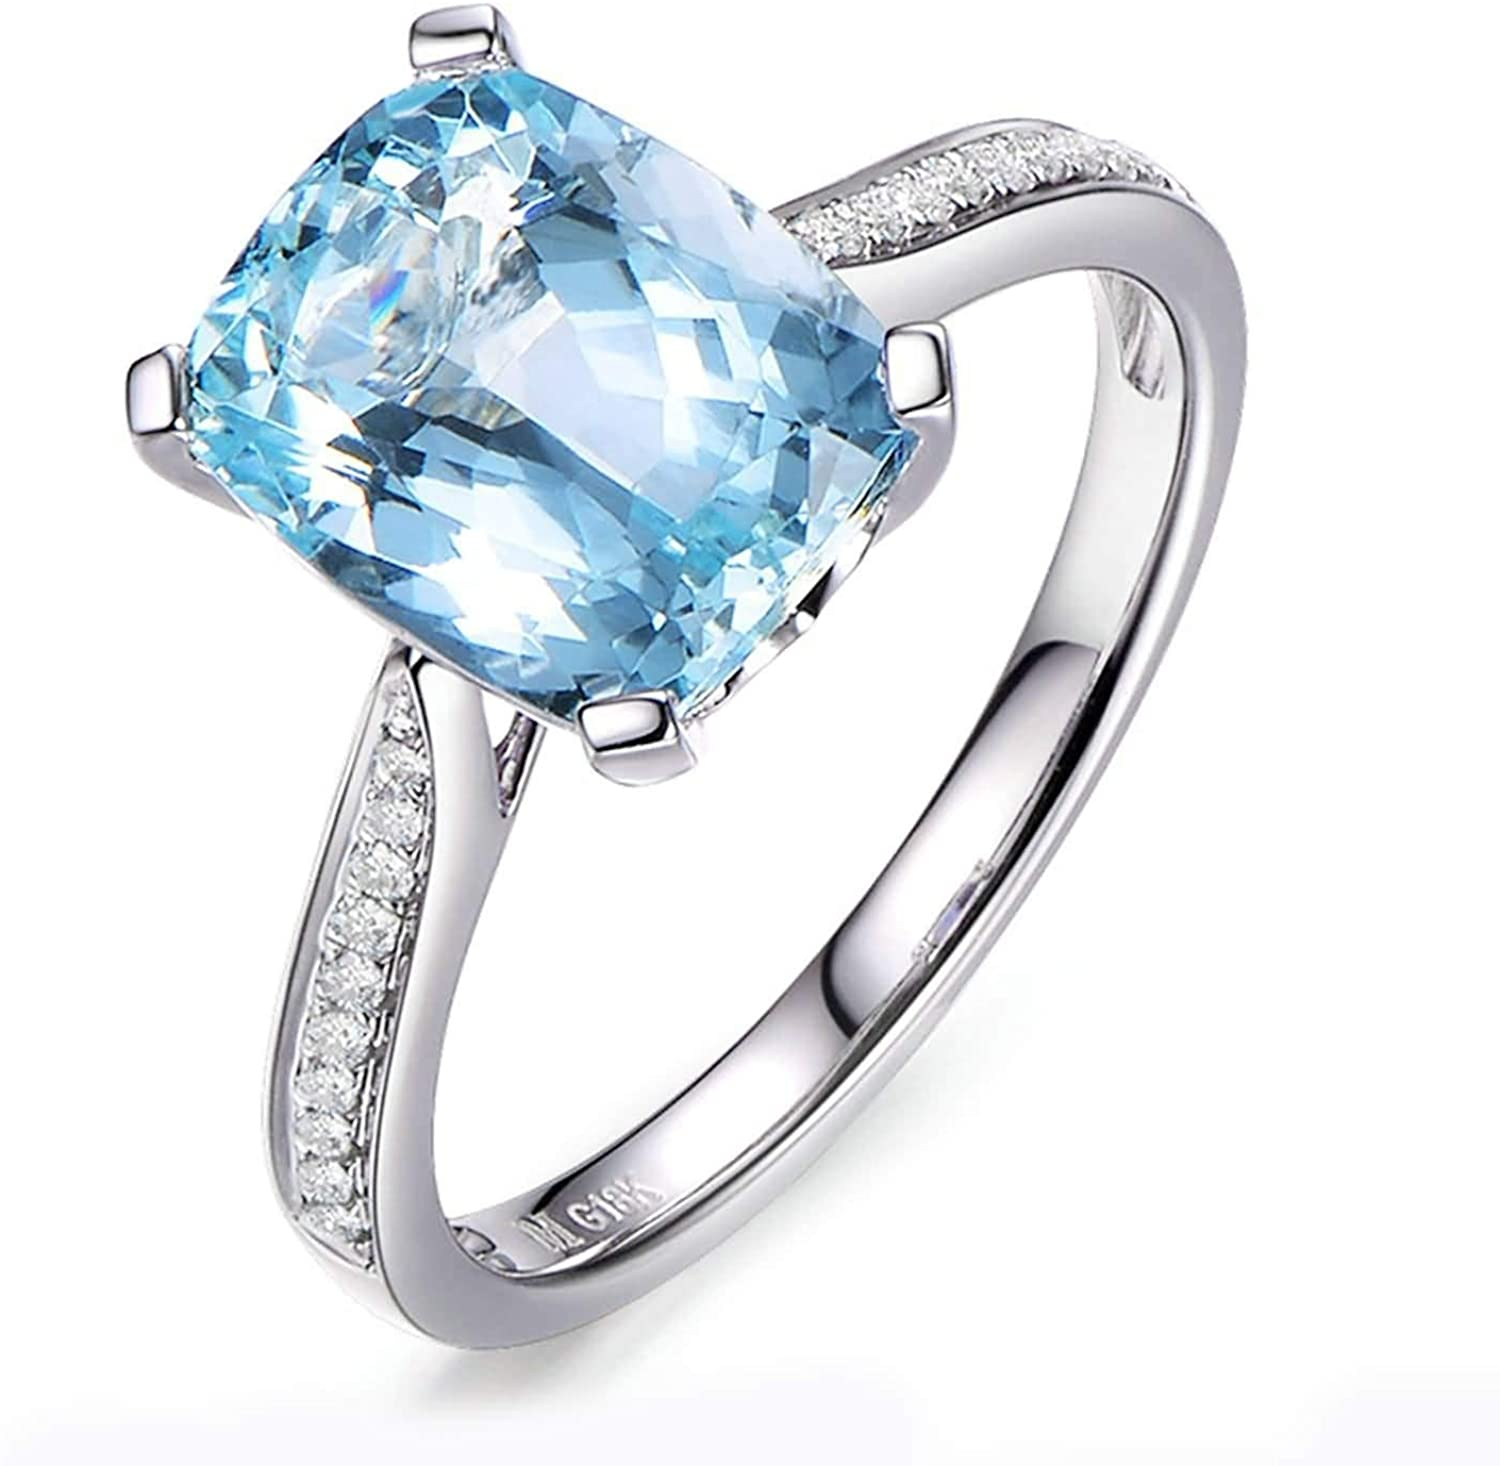 AMDXD 18K White Gold Rings for Women, 3.15ct Cushion Aquamarine with 0.1ct Diamond Anniversary Ring Gift for Her White Gold Size 9.5